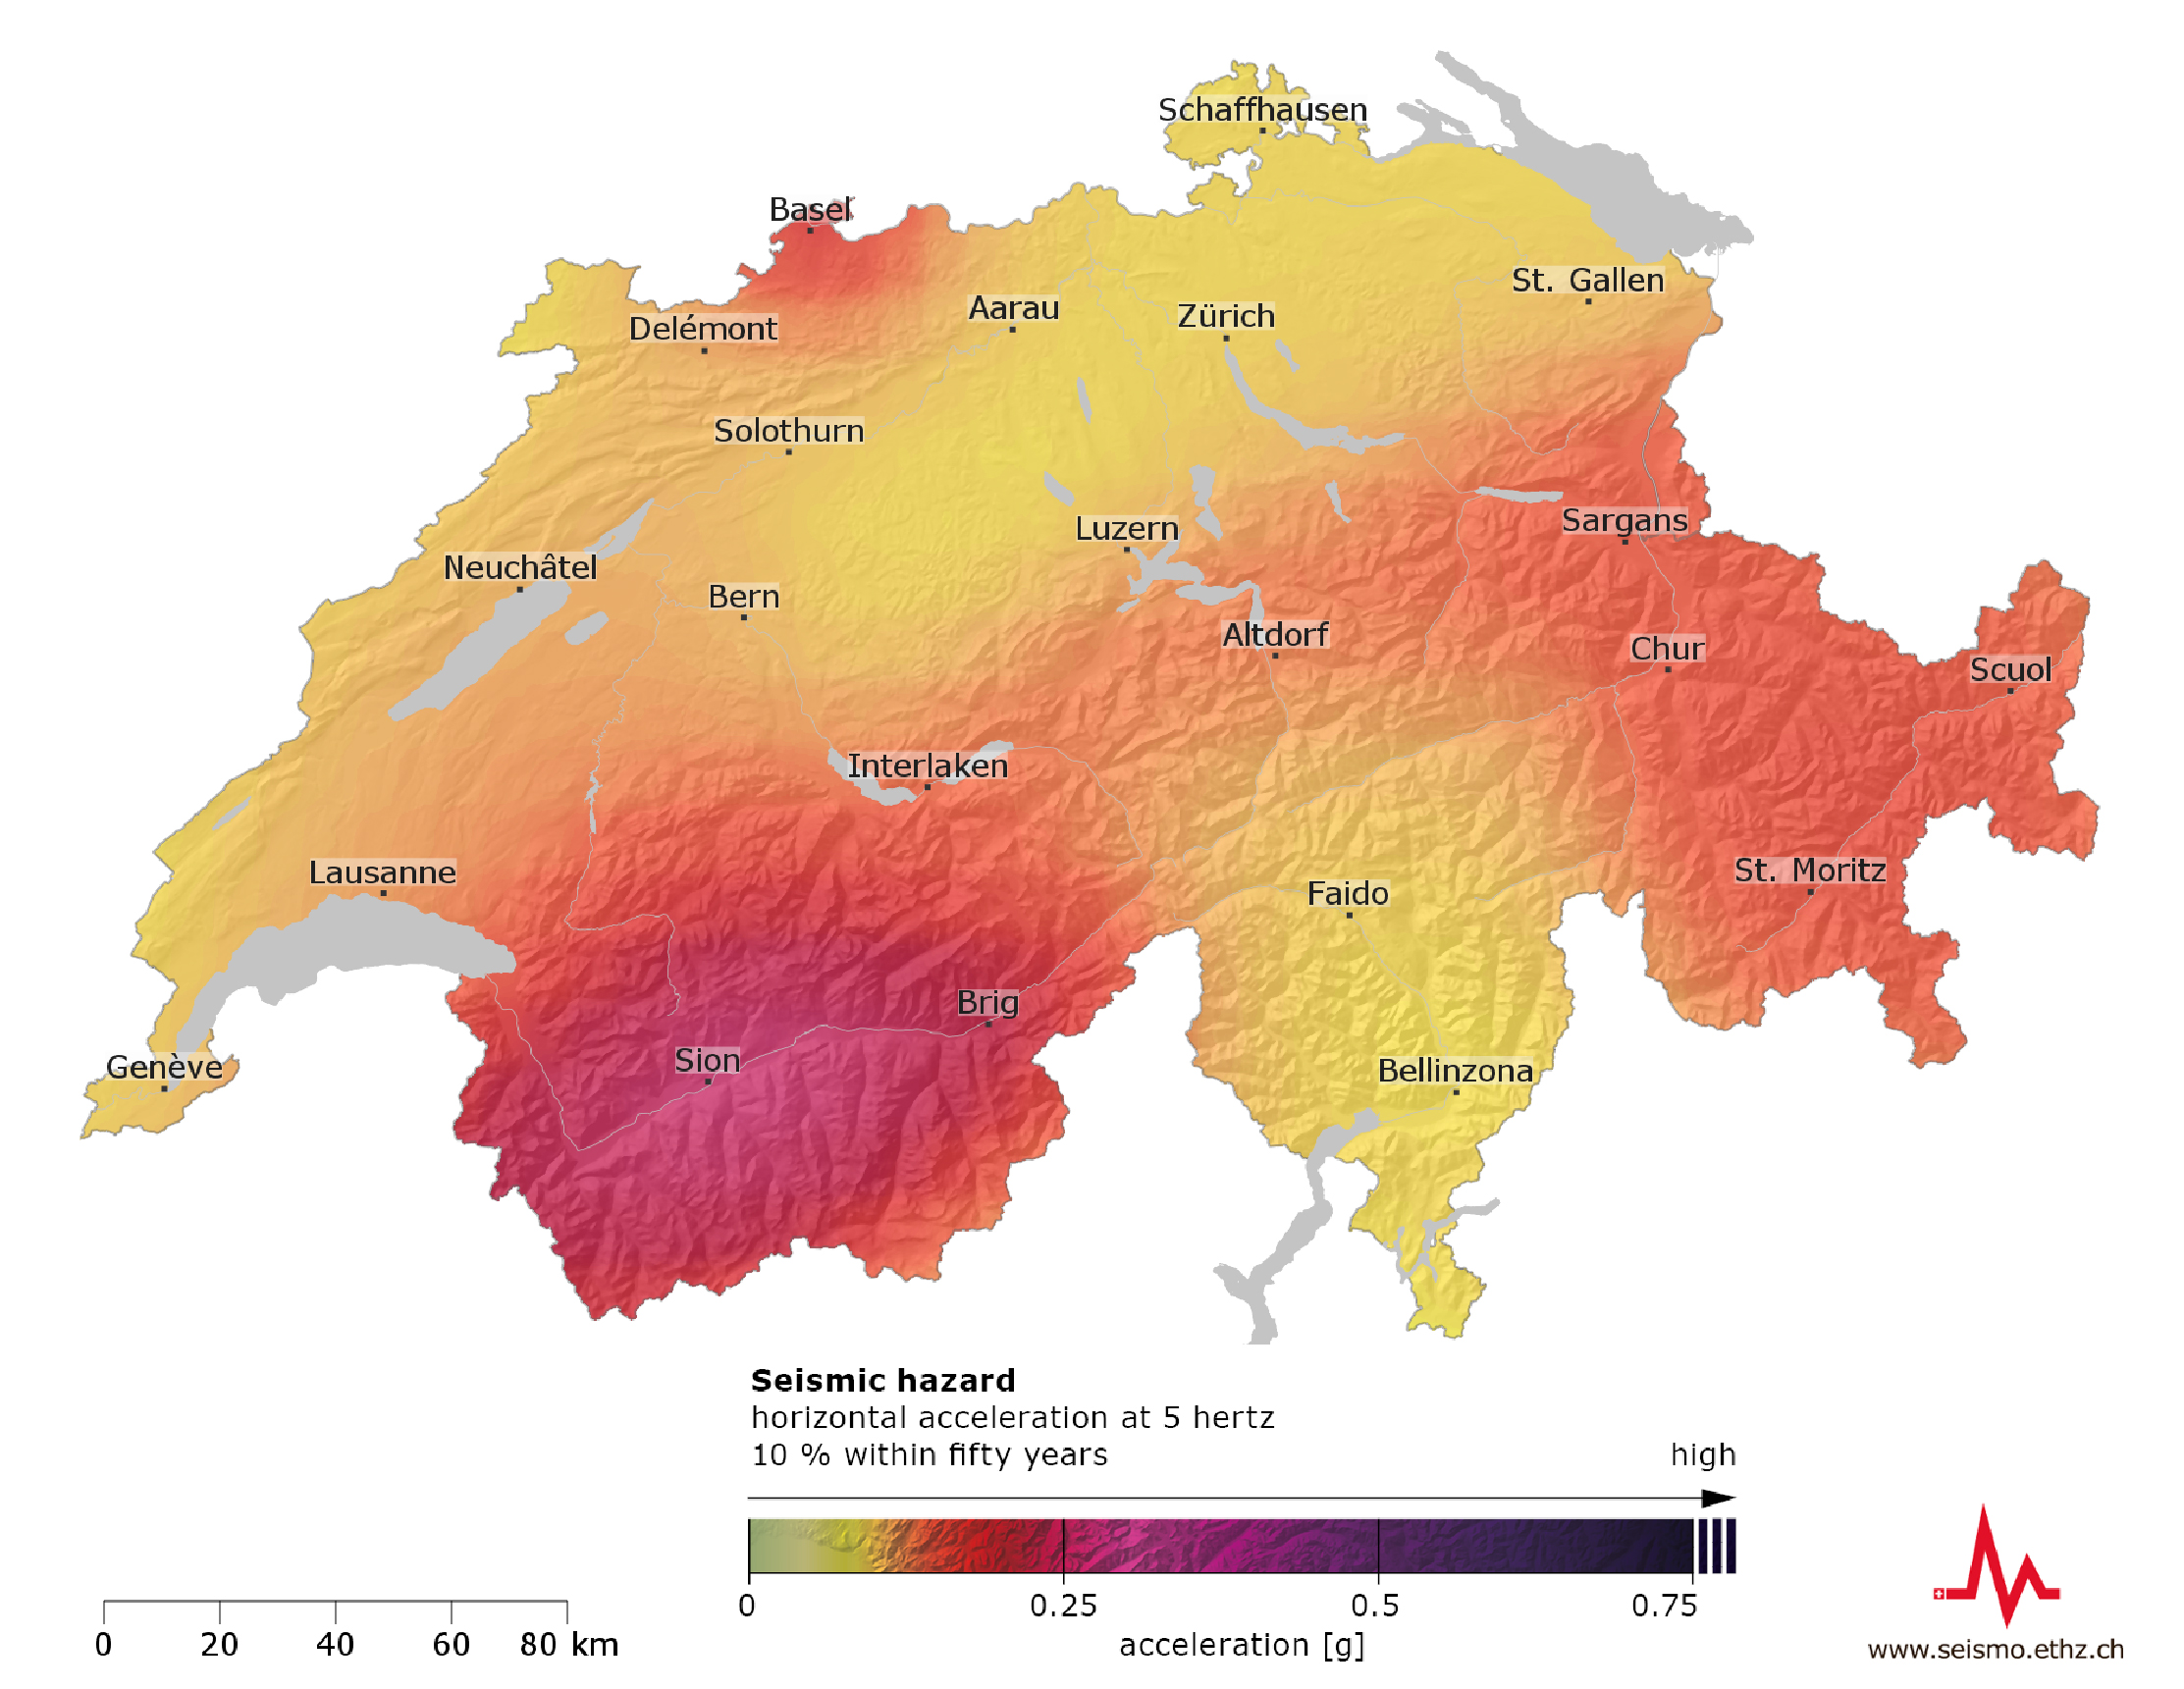 SUIhaz15 - the Seismic Hazard Model for Switzerland 2015